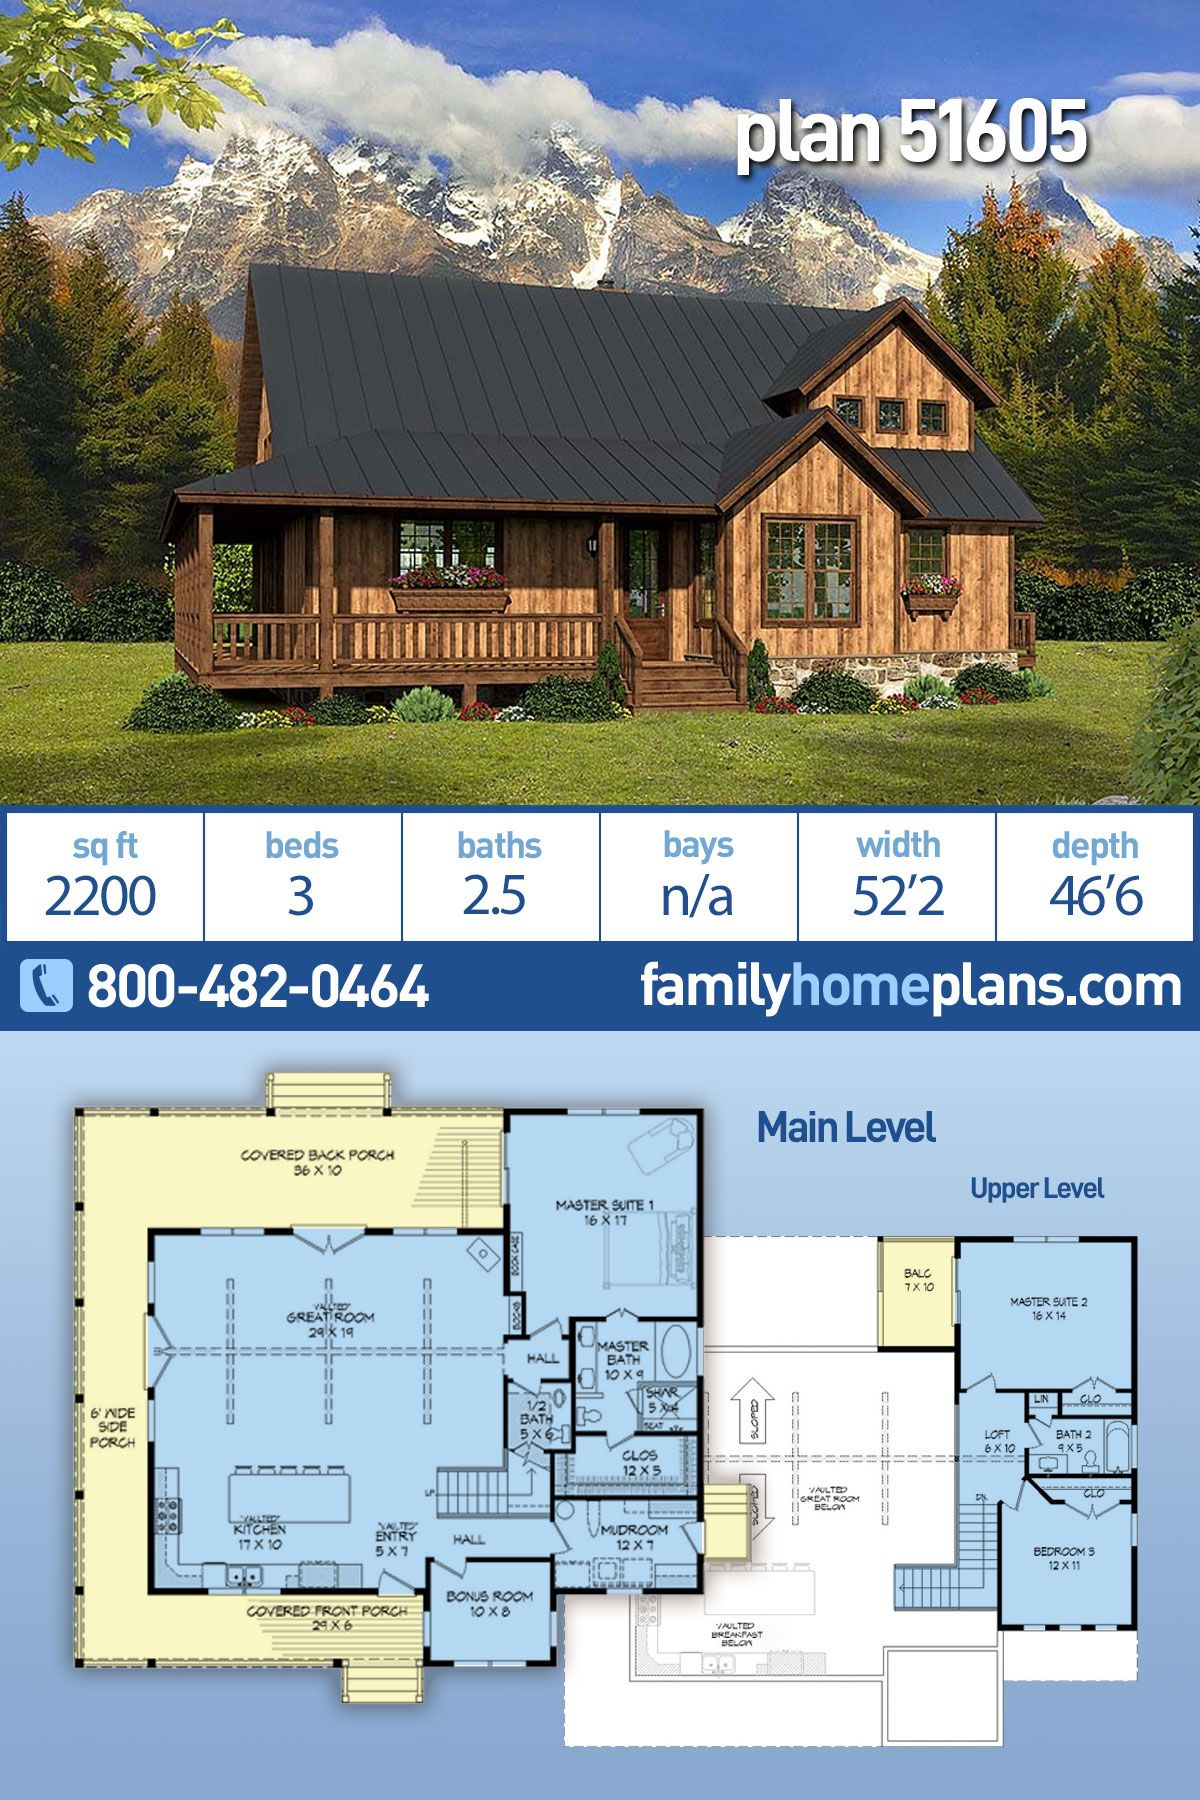 Southern Style House Plan 51605 With 3 Bed 3 Bath Rustic House Plans House Plans Southern Style House Plans